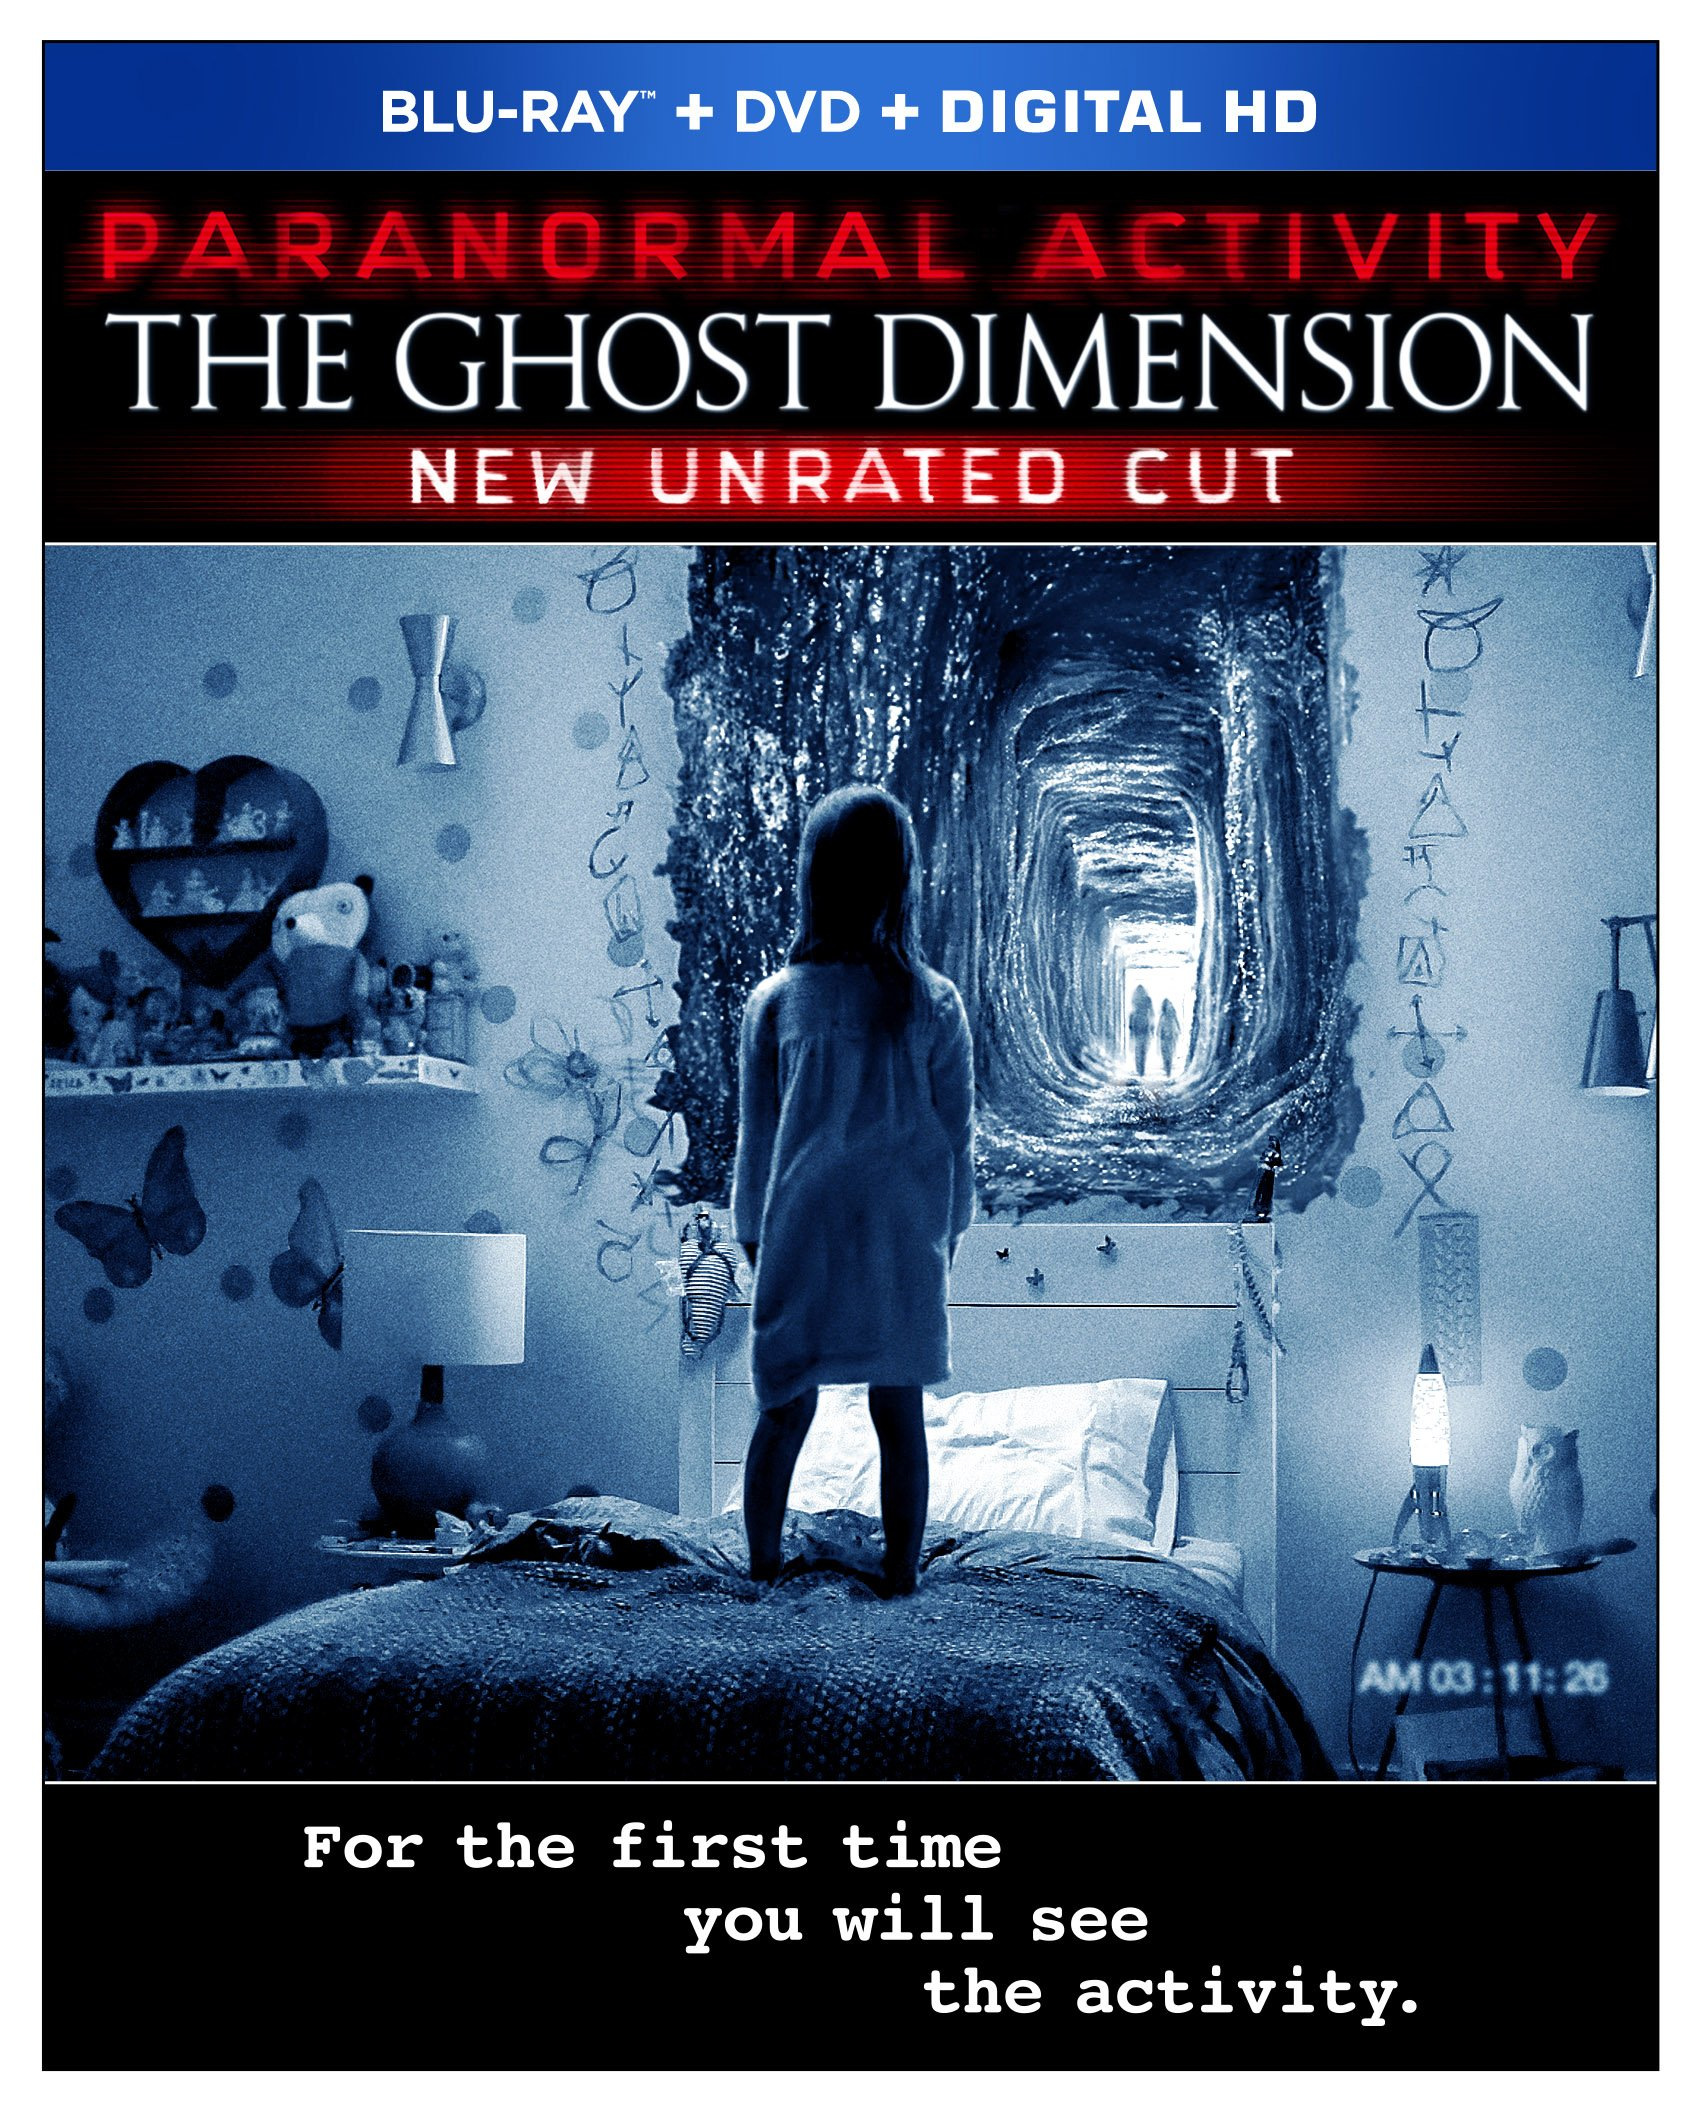 Blu-ray : Paranormal Activity: The Ghost Dimension (Widescreen, 2 Pack, , Dubbed, Sensormatic)